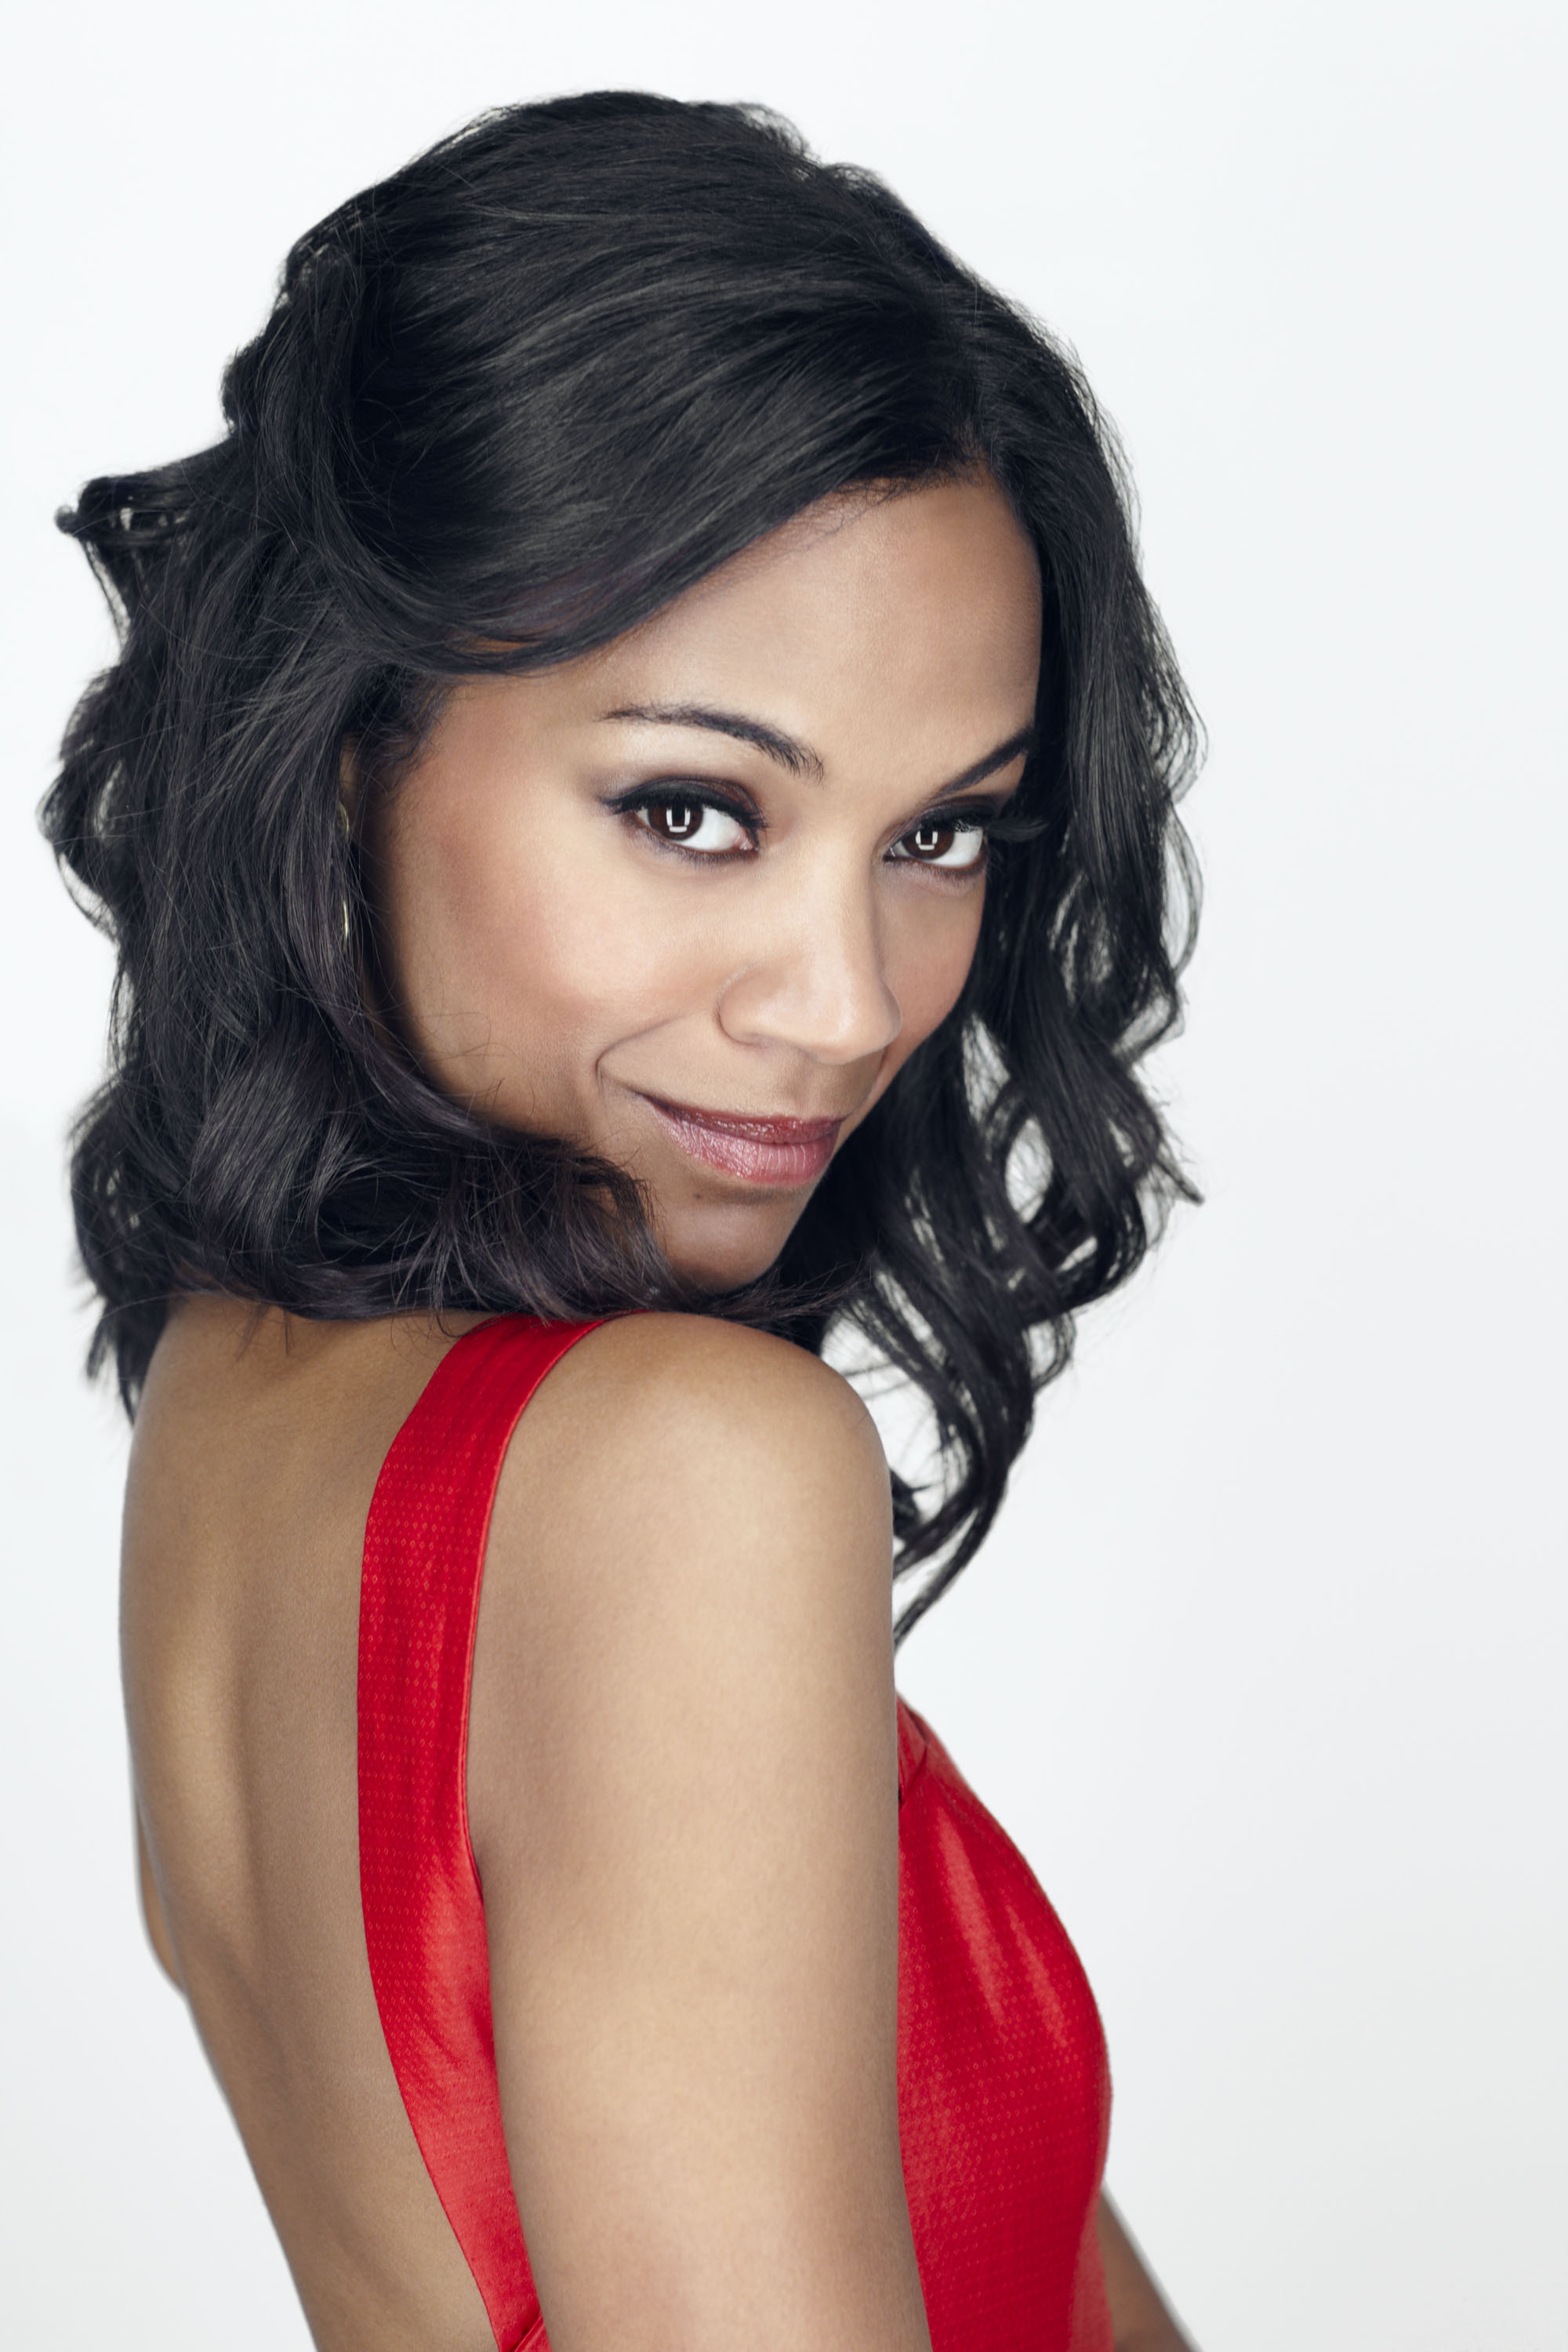 StreamDaily » Arc... Zoe Saldana